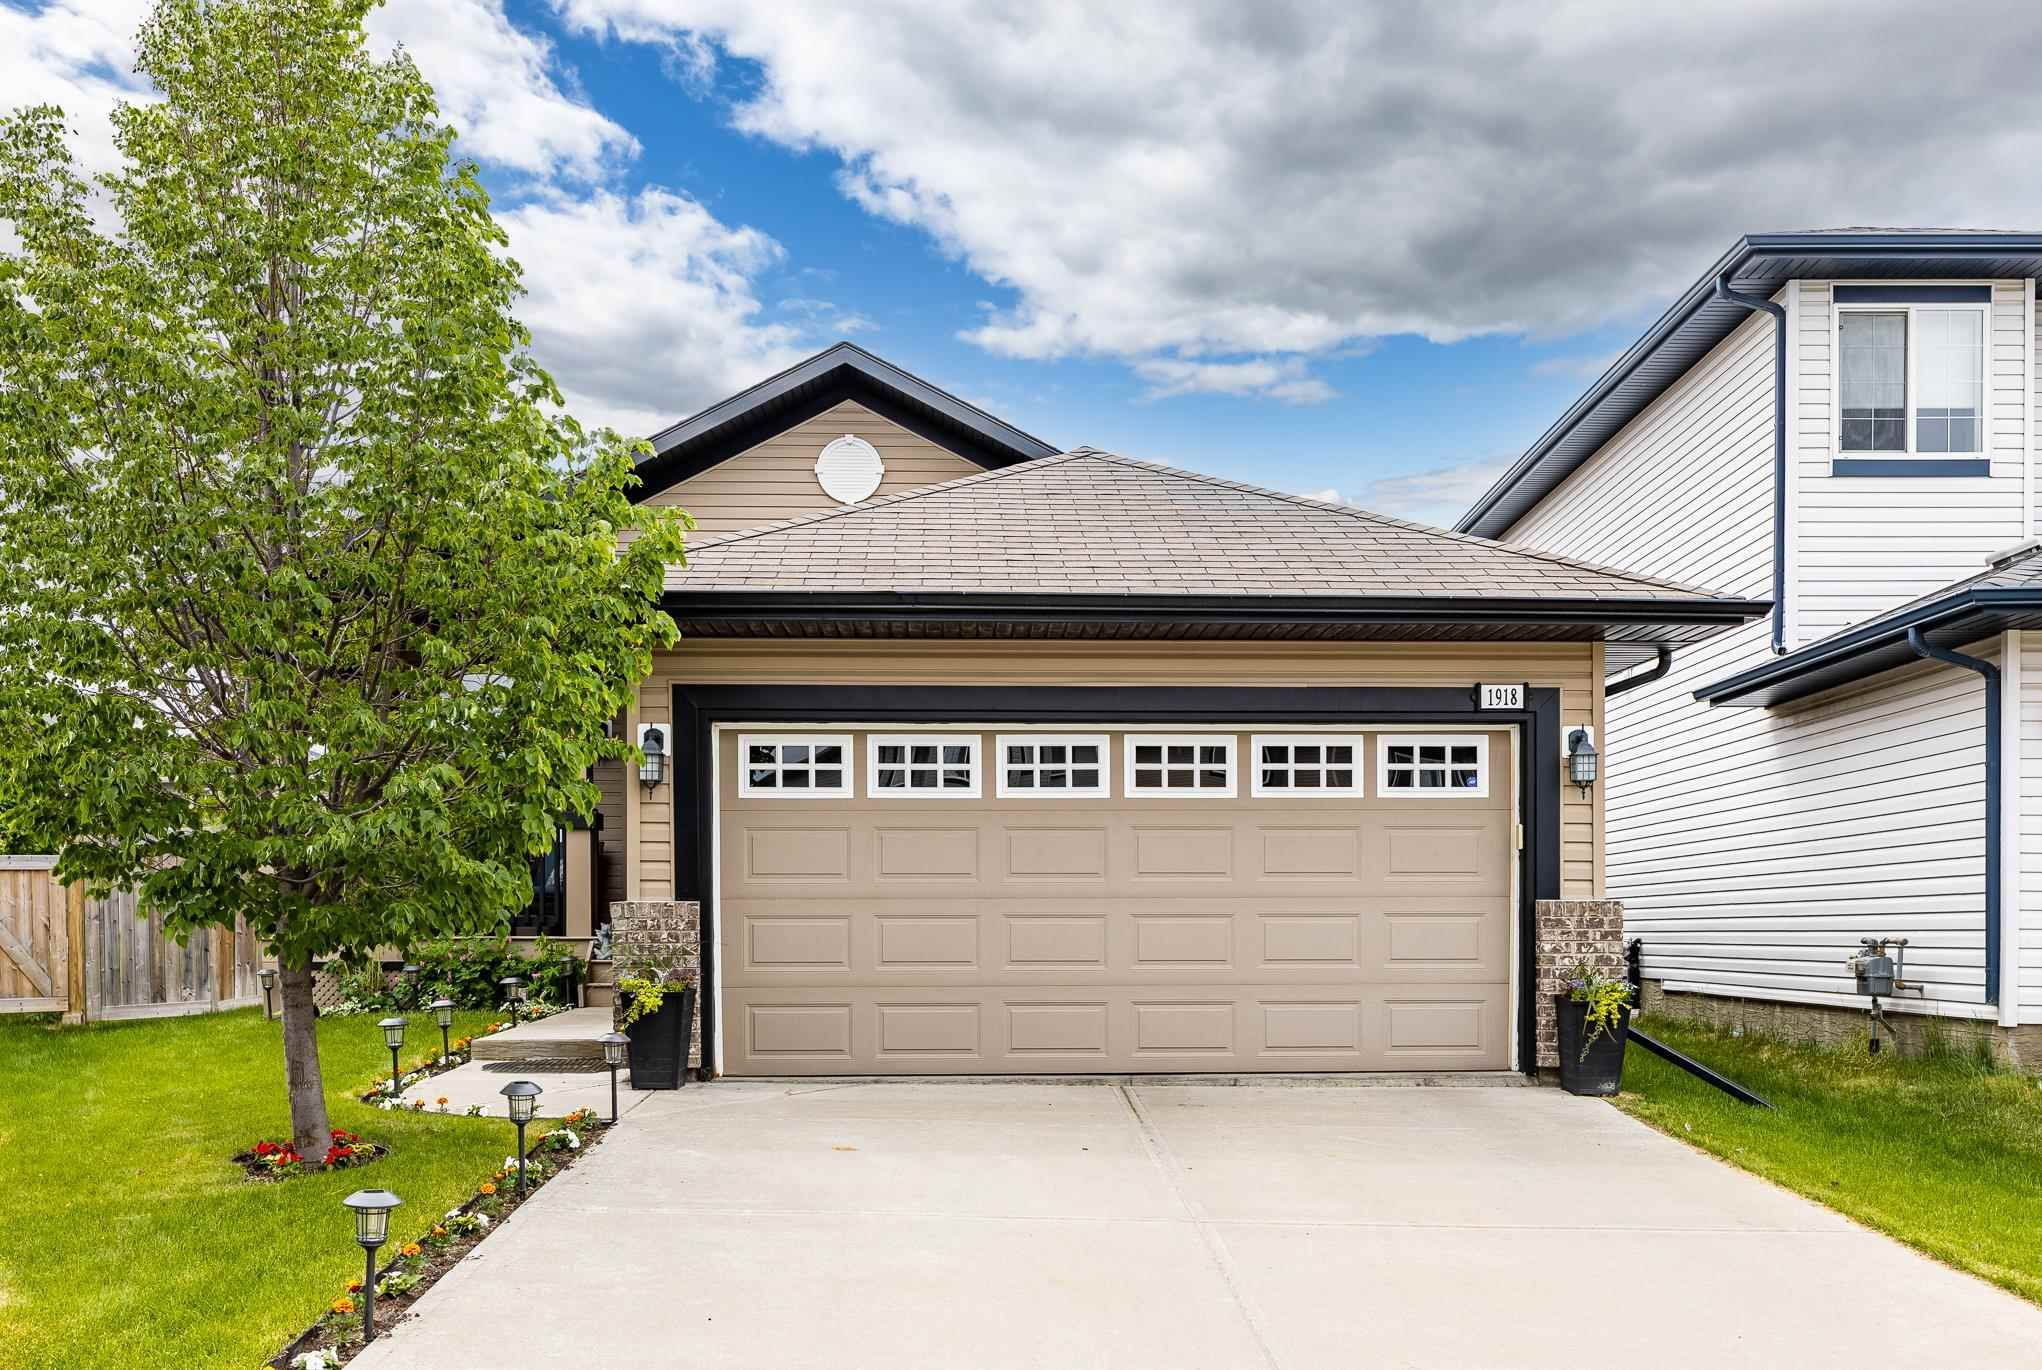 Main Photo: 1918 HAMMOND Place in Edmonton: Zone 58 House for sale : MLS®# E4249122